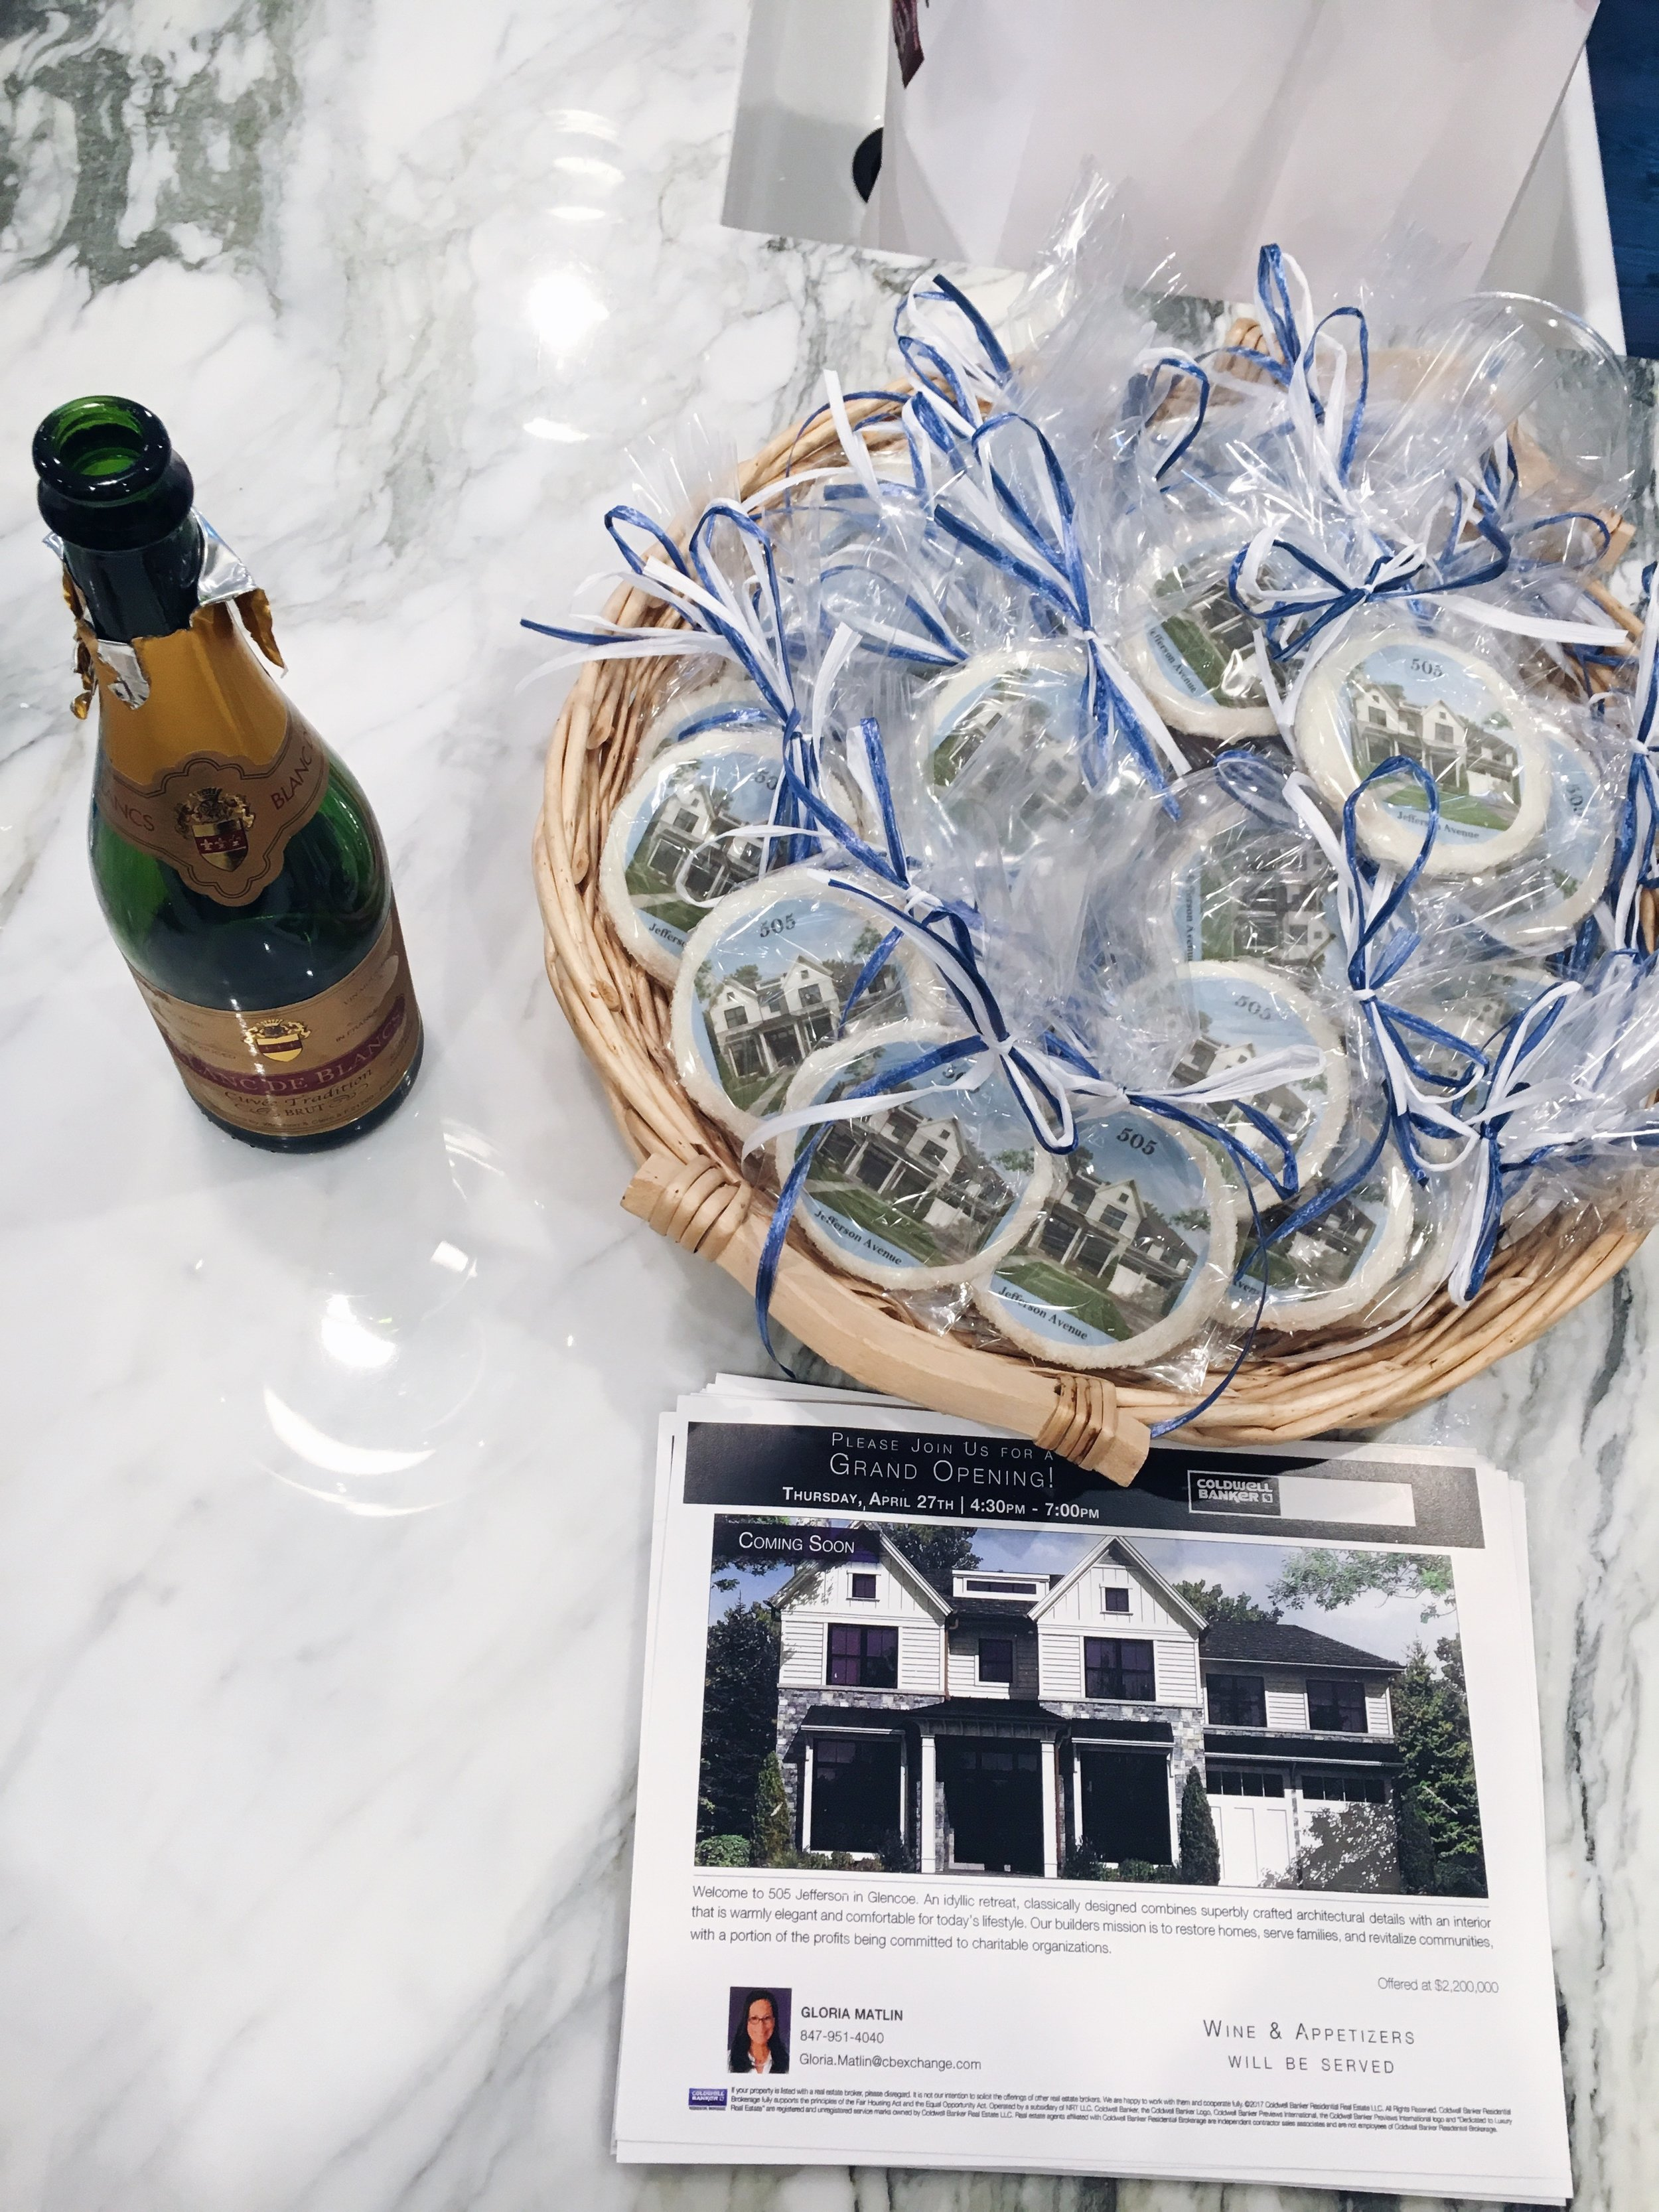 The celebration of a completed New Construction home.Cheers!